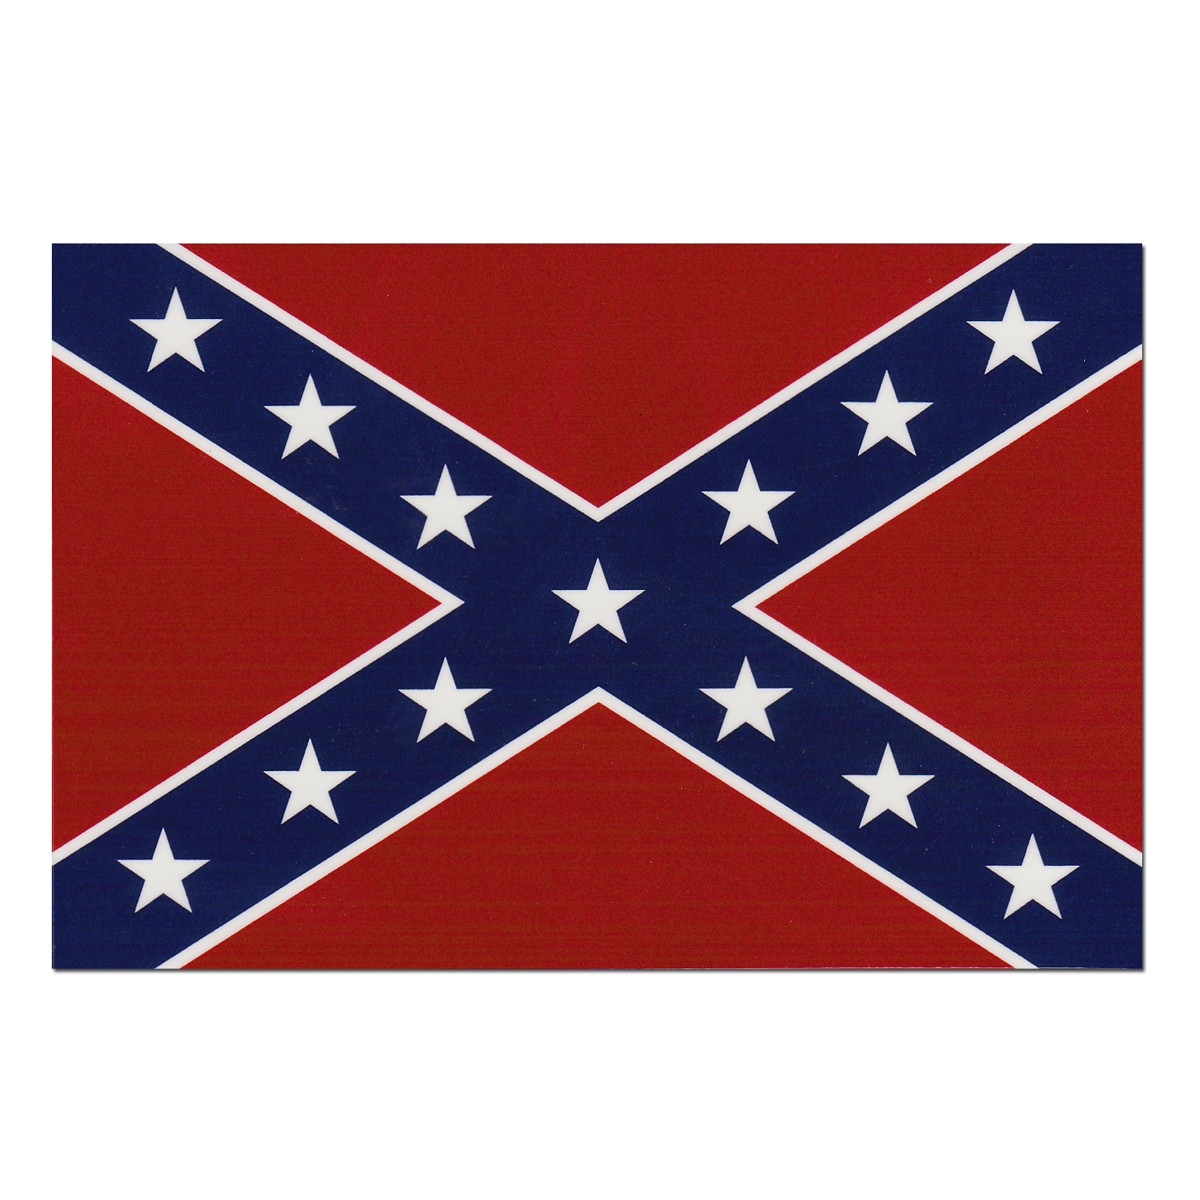 Clipart of confederate flag.